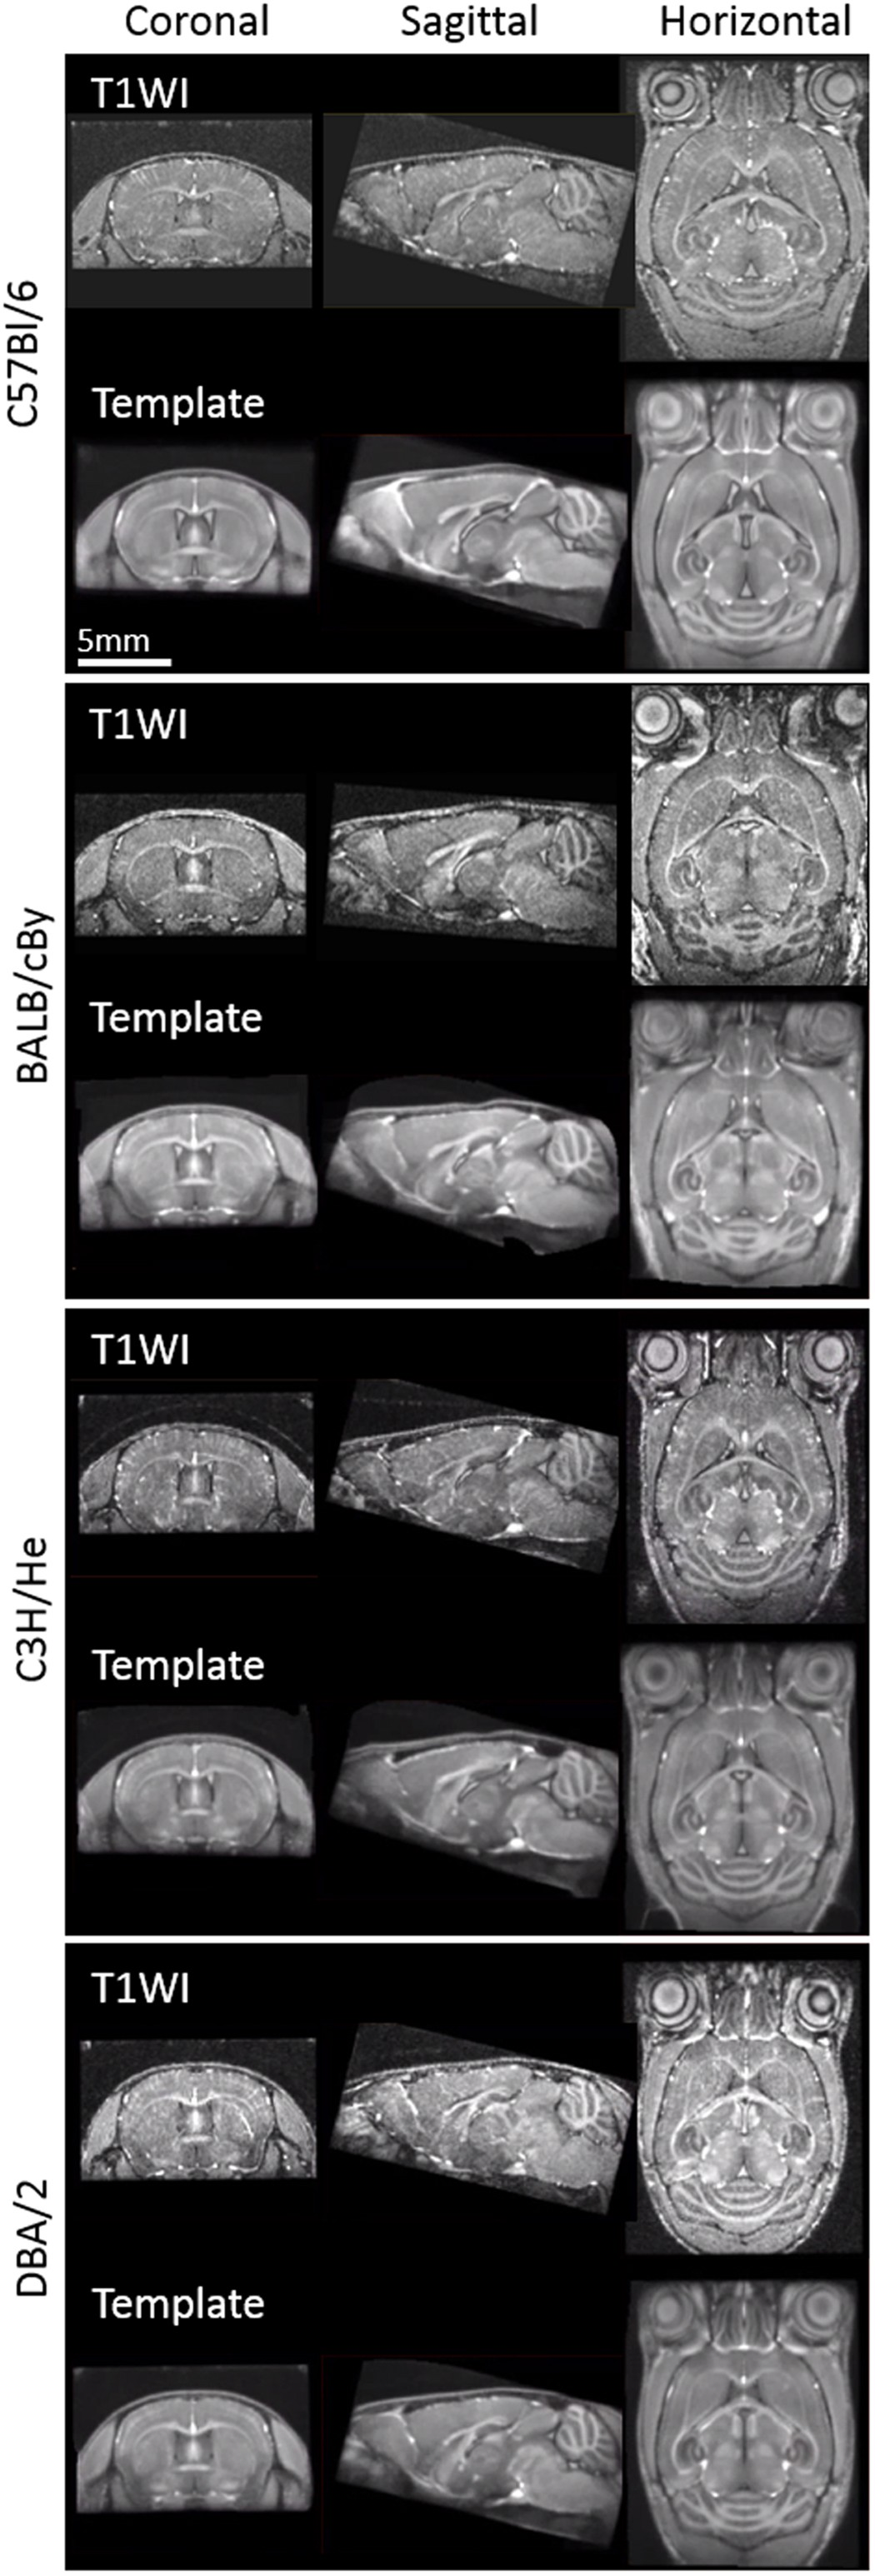 In vivo microscopic voxel-based morphometry with a brain template to ...